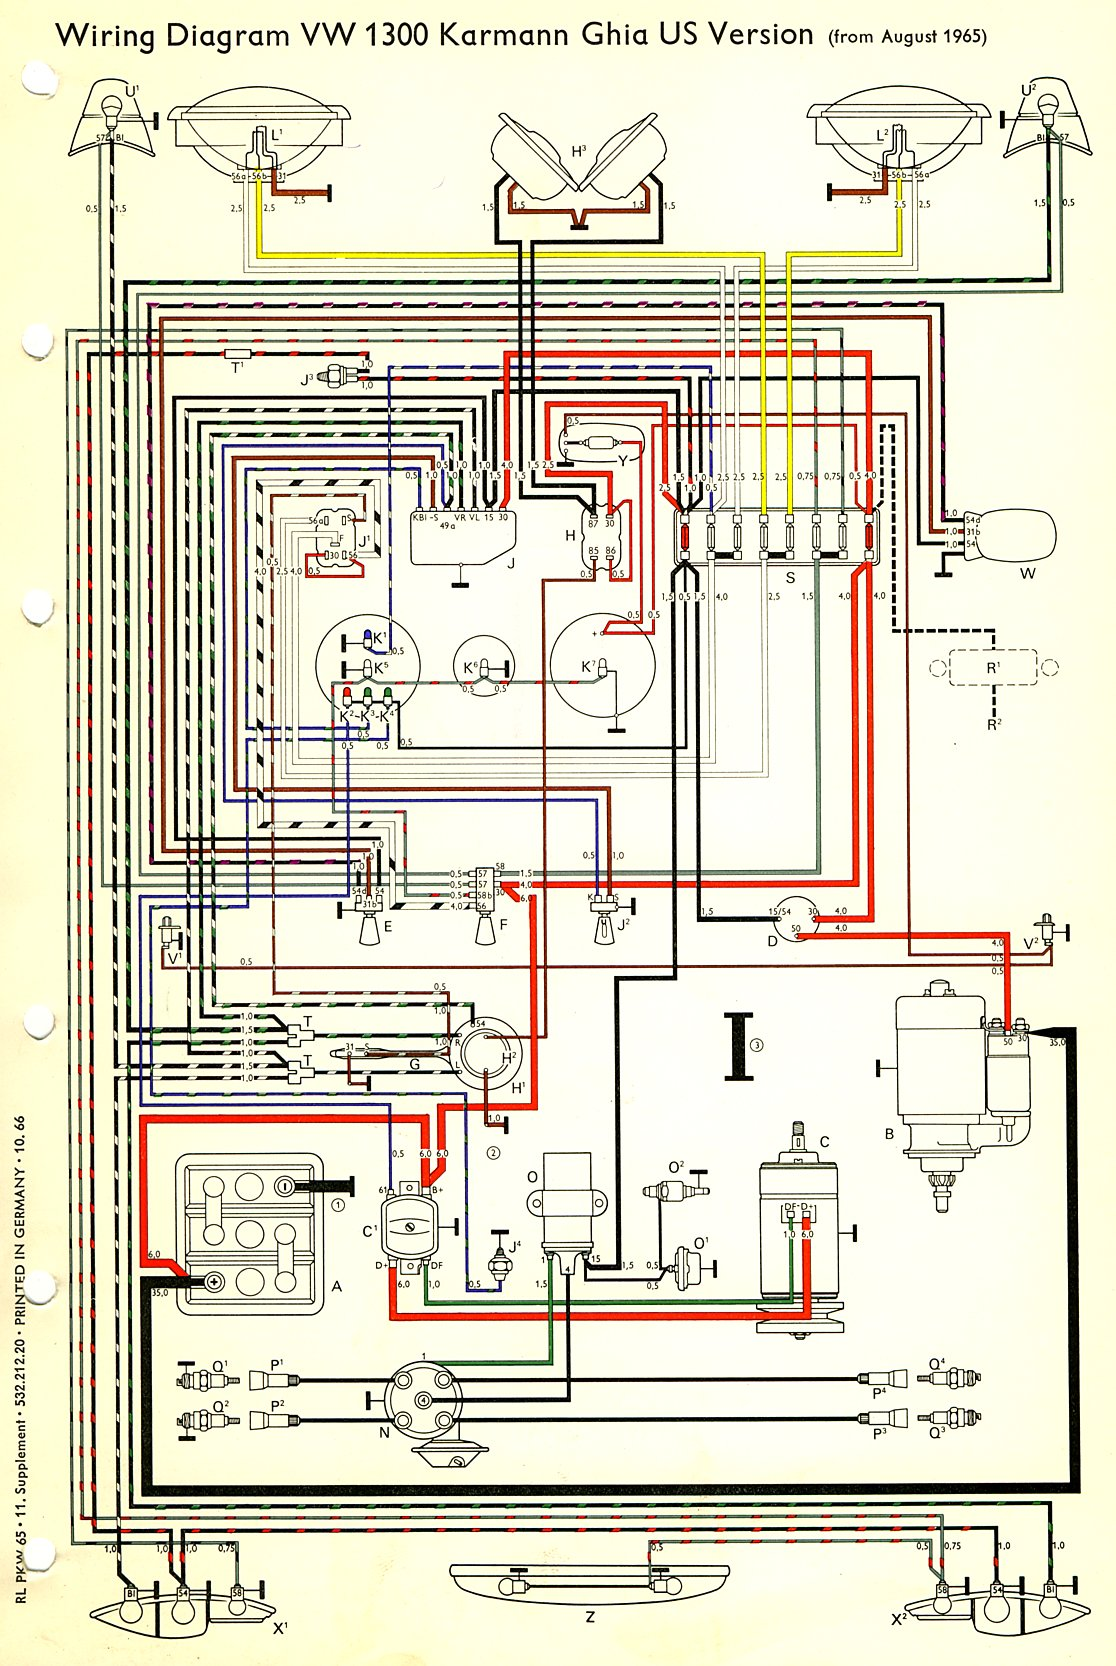 Wiring Diagram For 72 Chevelle 1971 Nova Harness Freebootstrapthemes Co U2022thesamba Com Karmann Ghia Diagrams